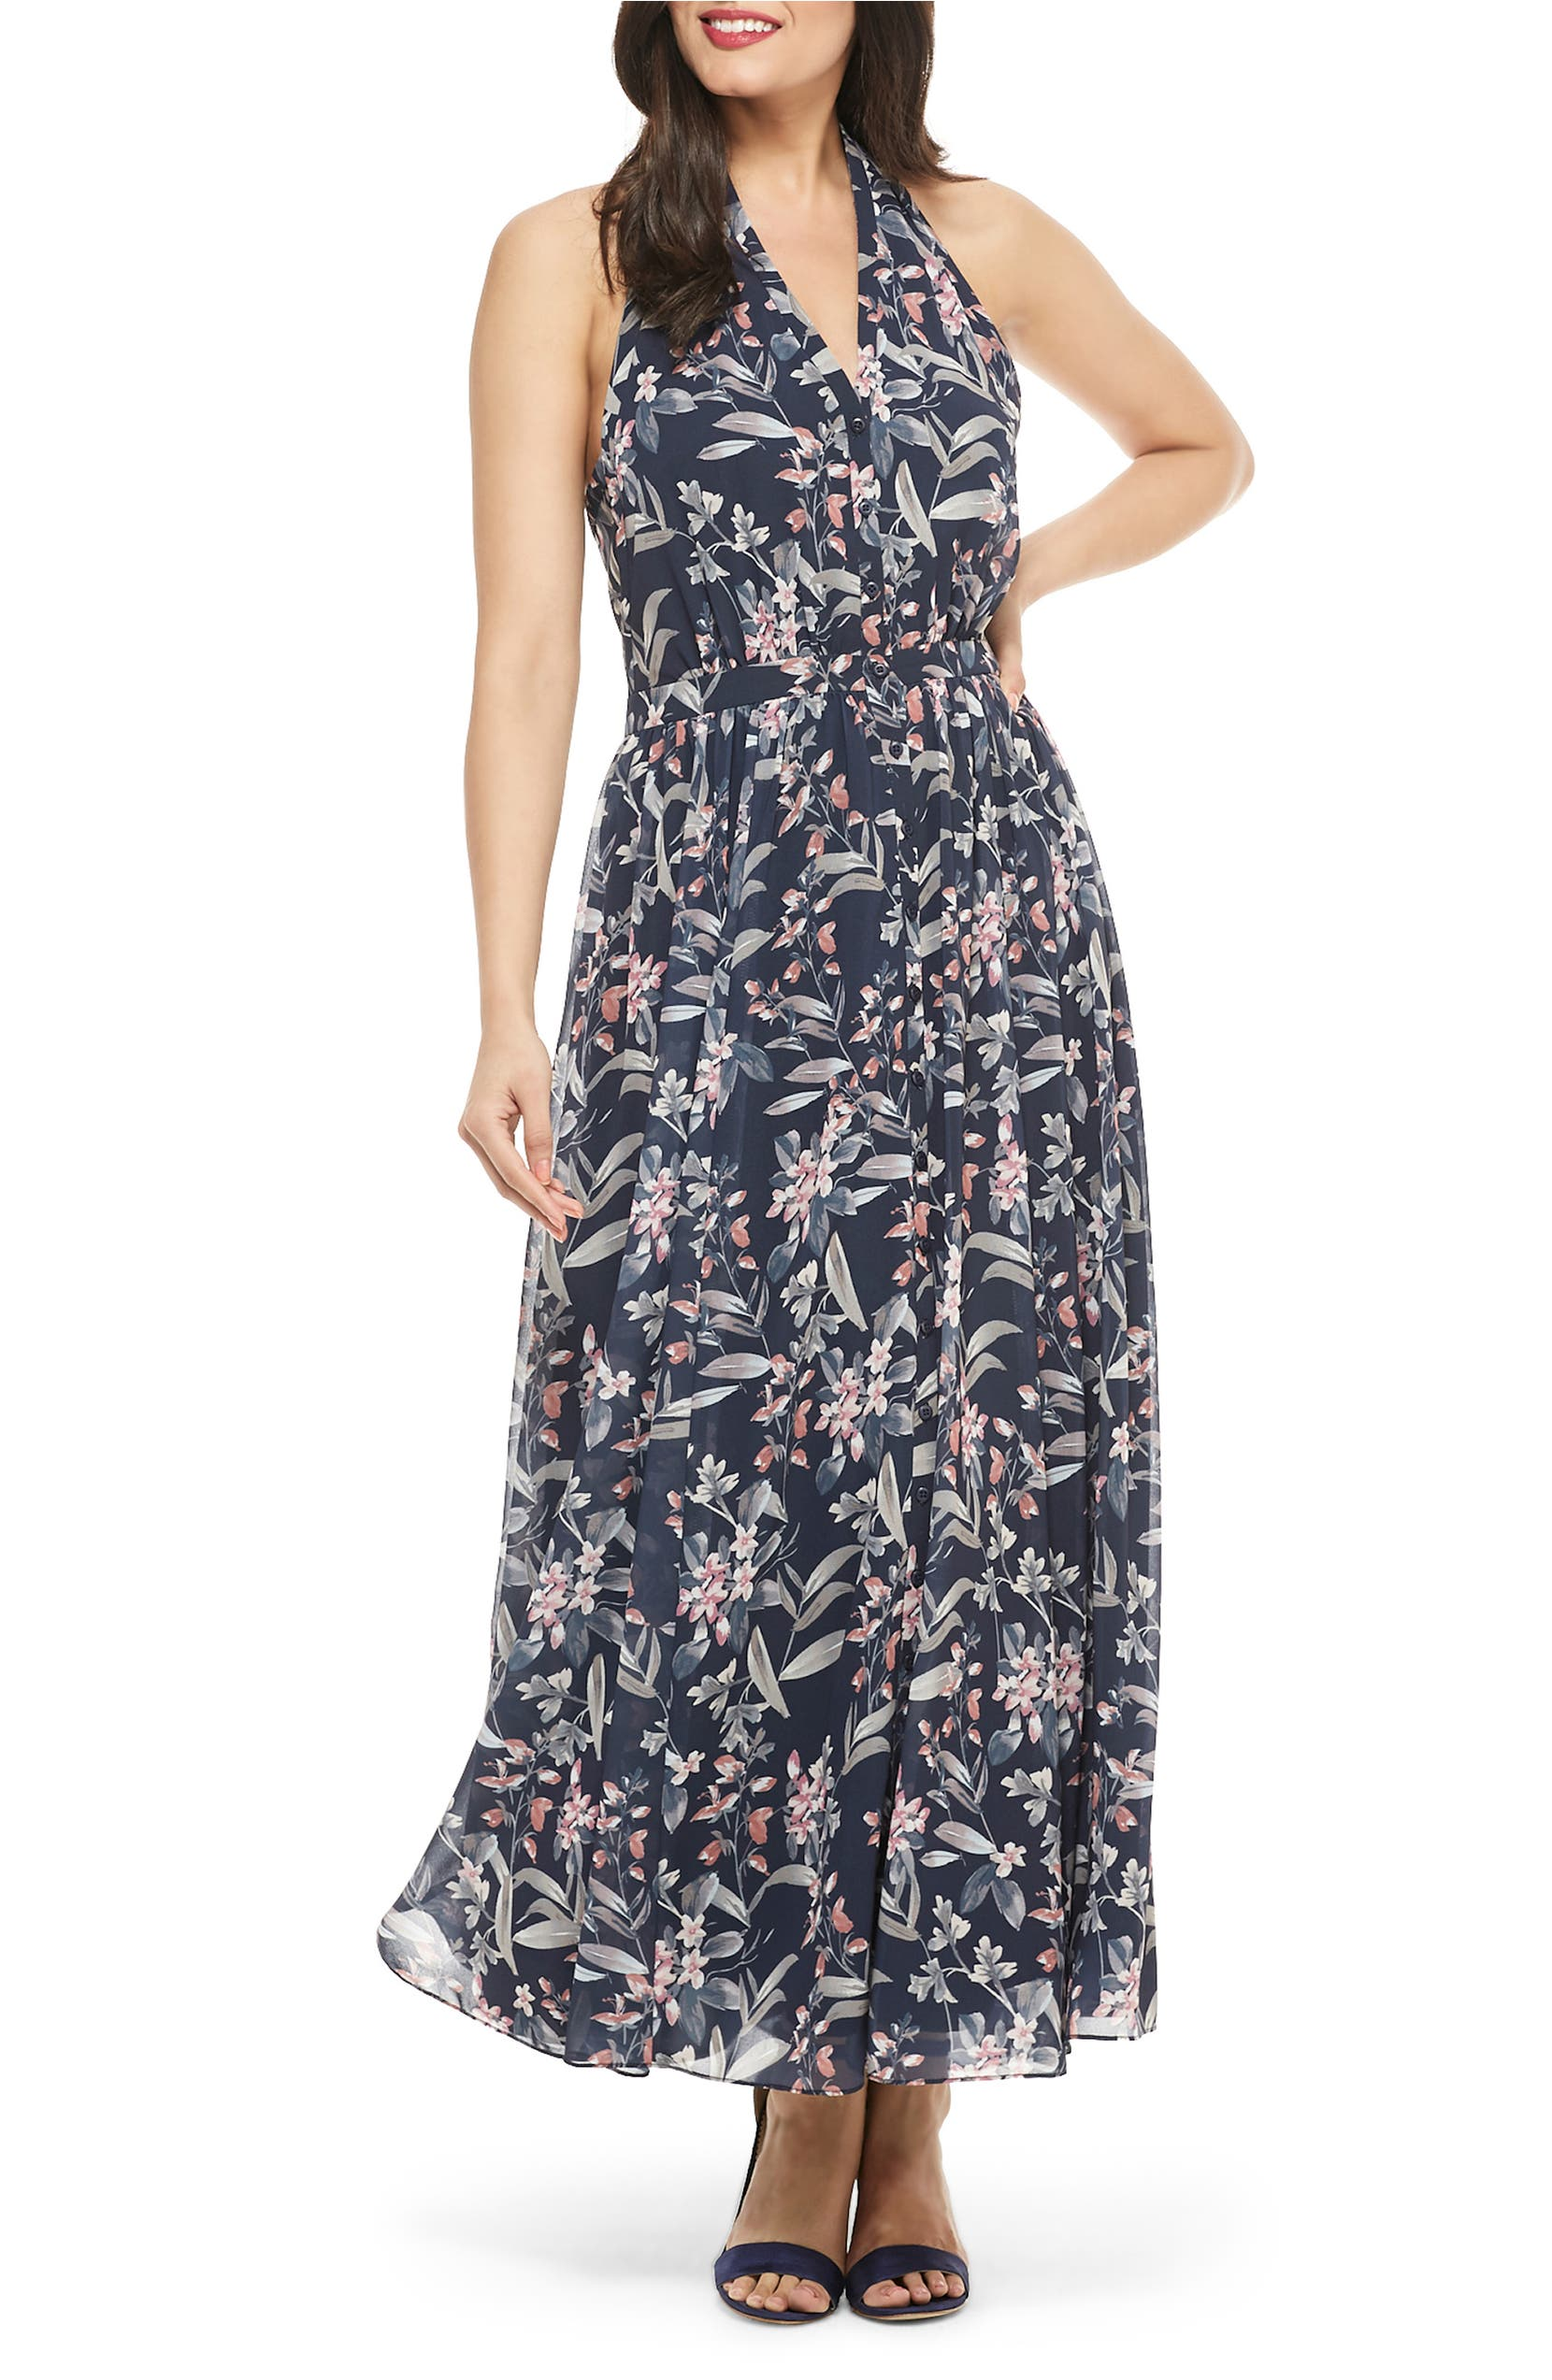 25683952e6d25 Gal Meets Glam Collection Siena Floral Print Halter Neck Chiffon ...